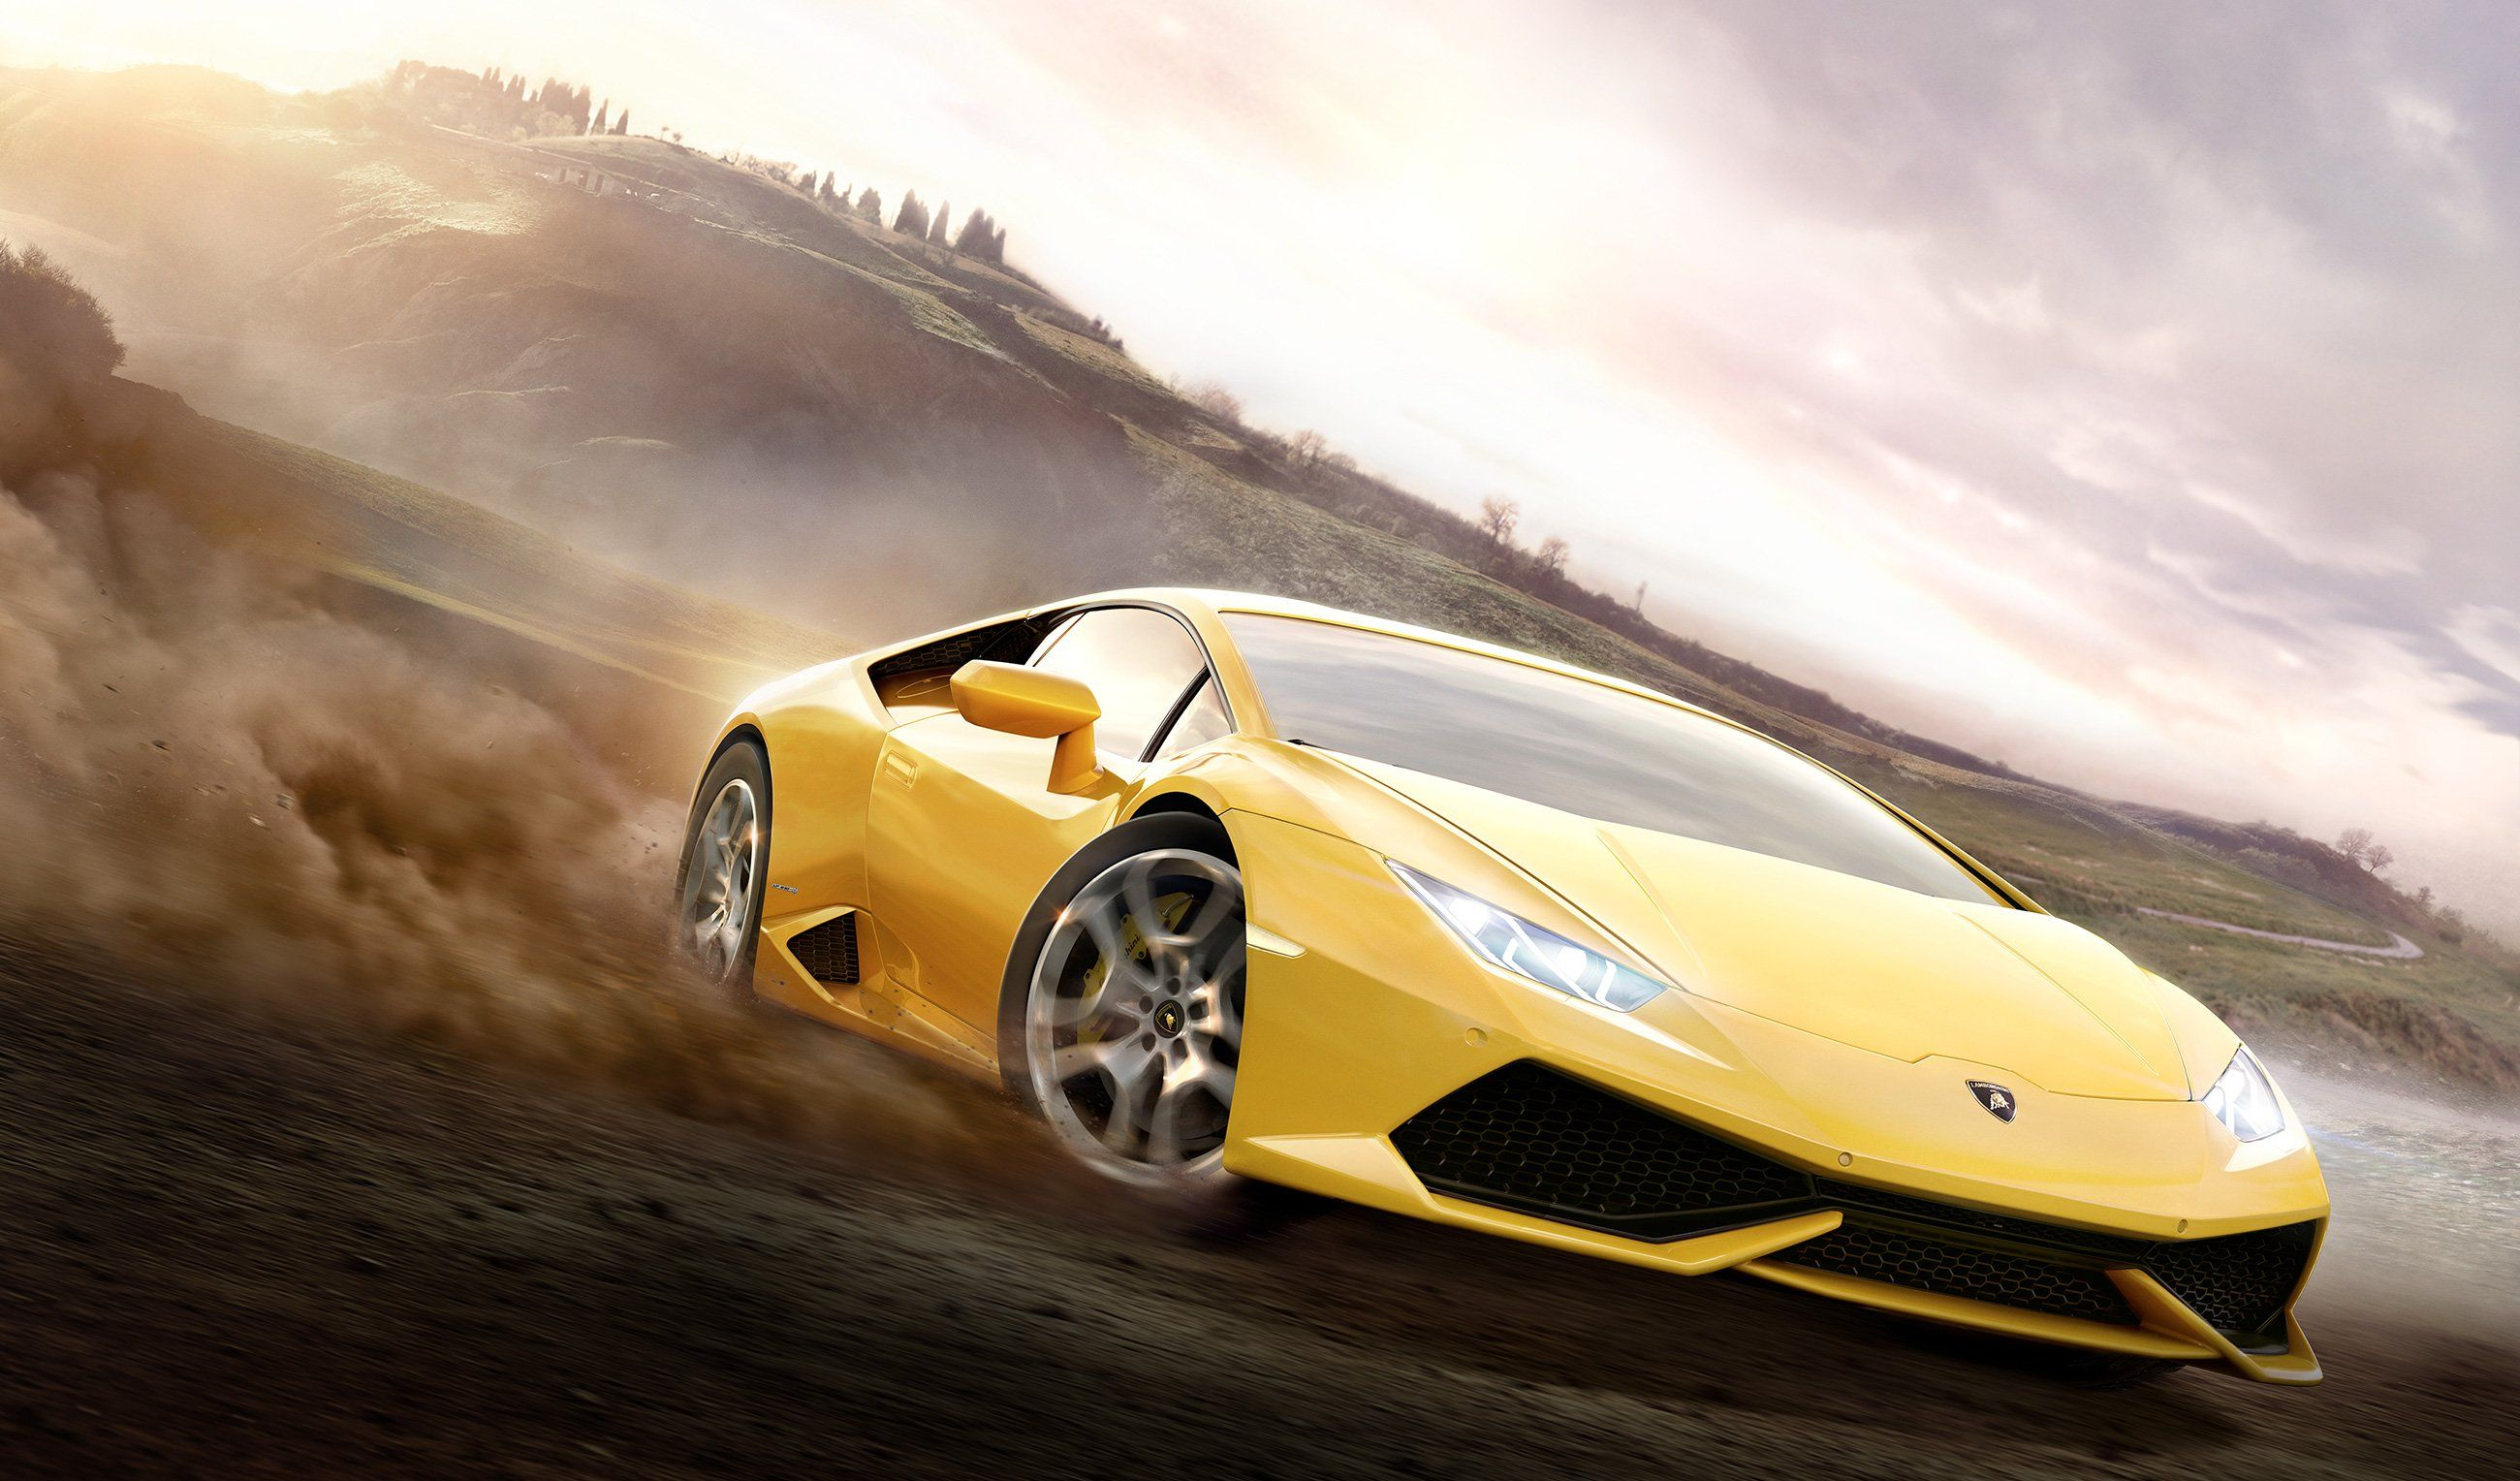 Lamborghini Huracan Wallpaper Background Free Download Forza